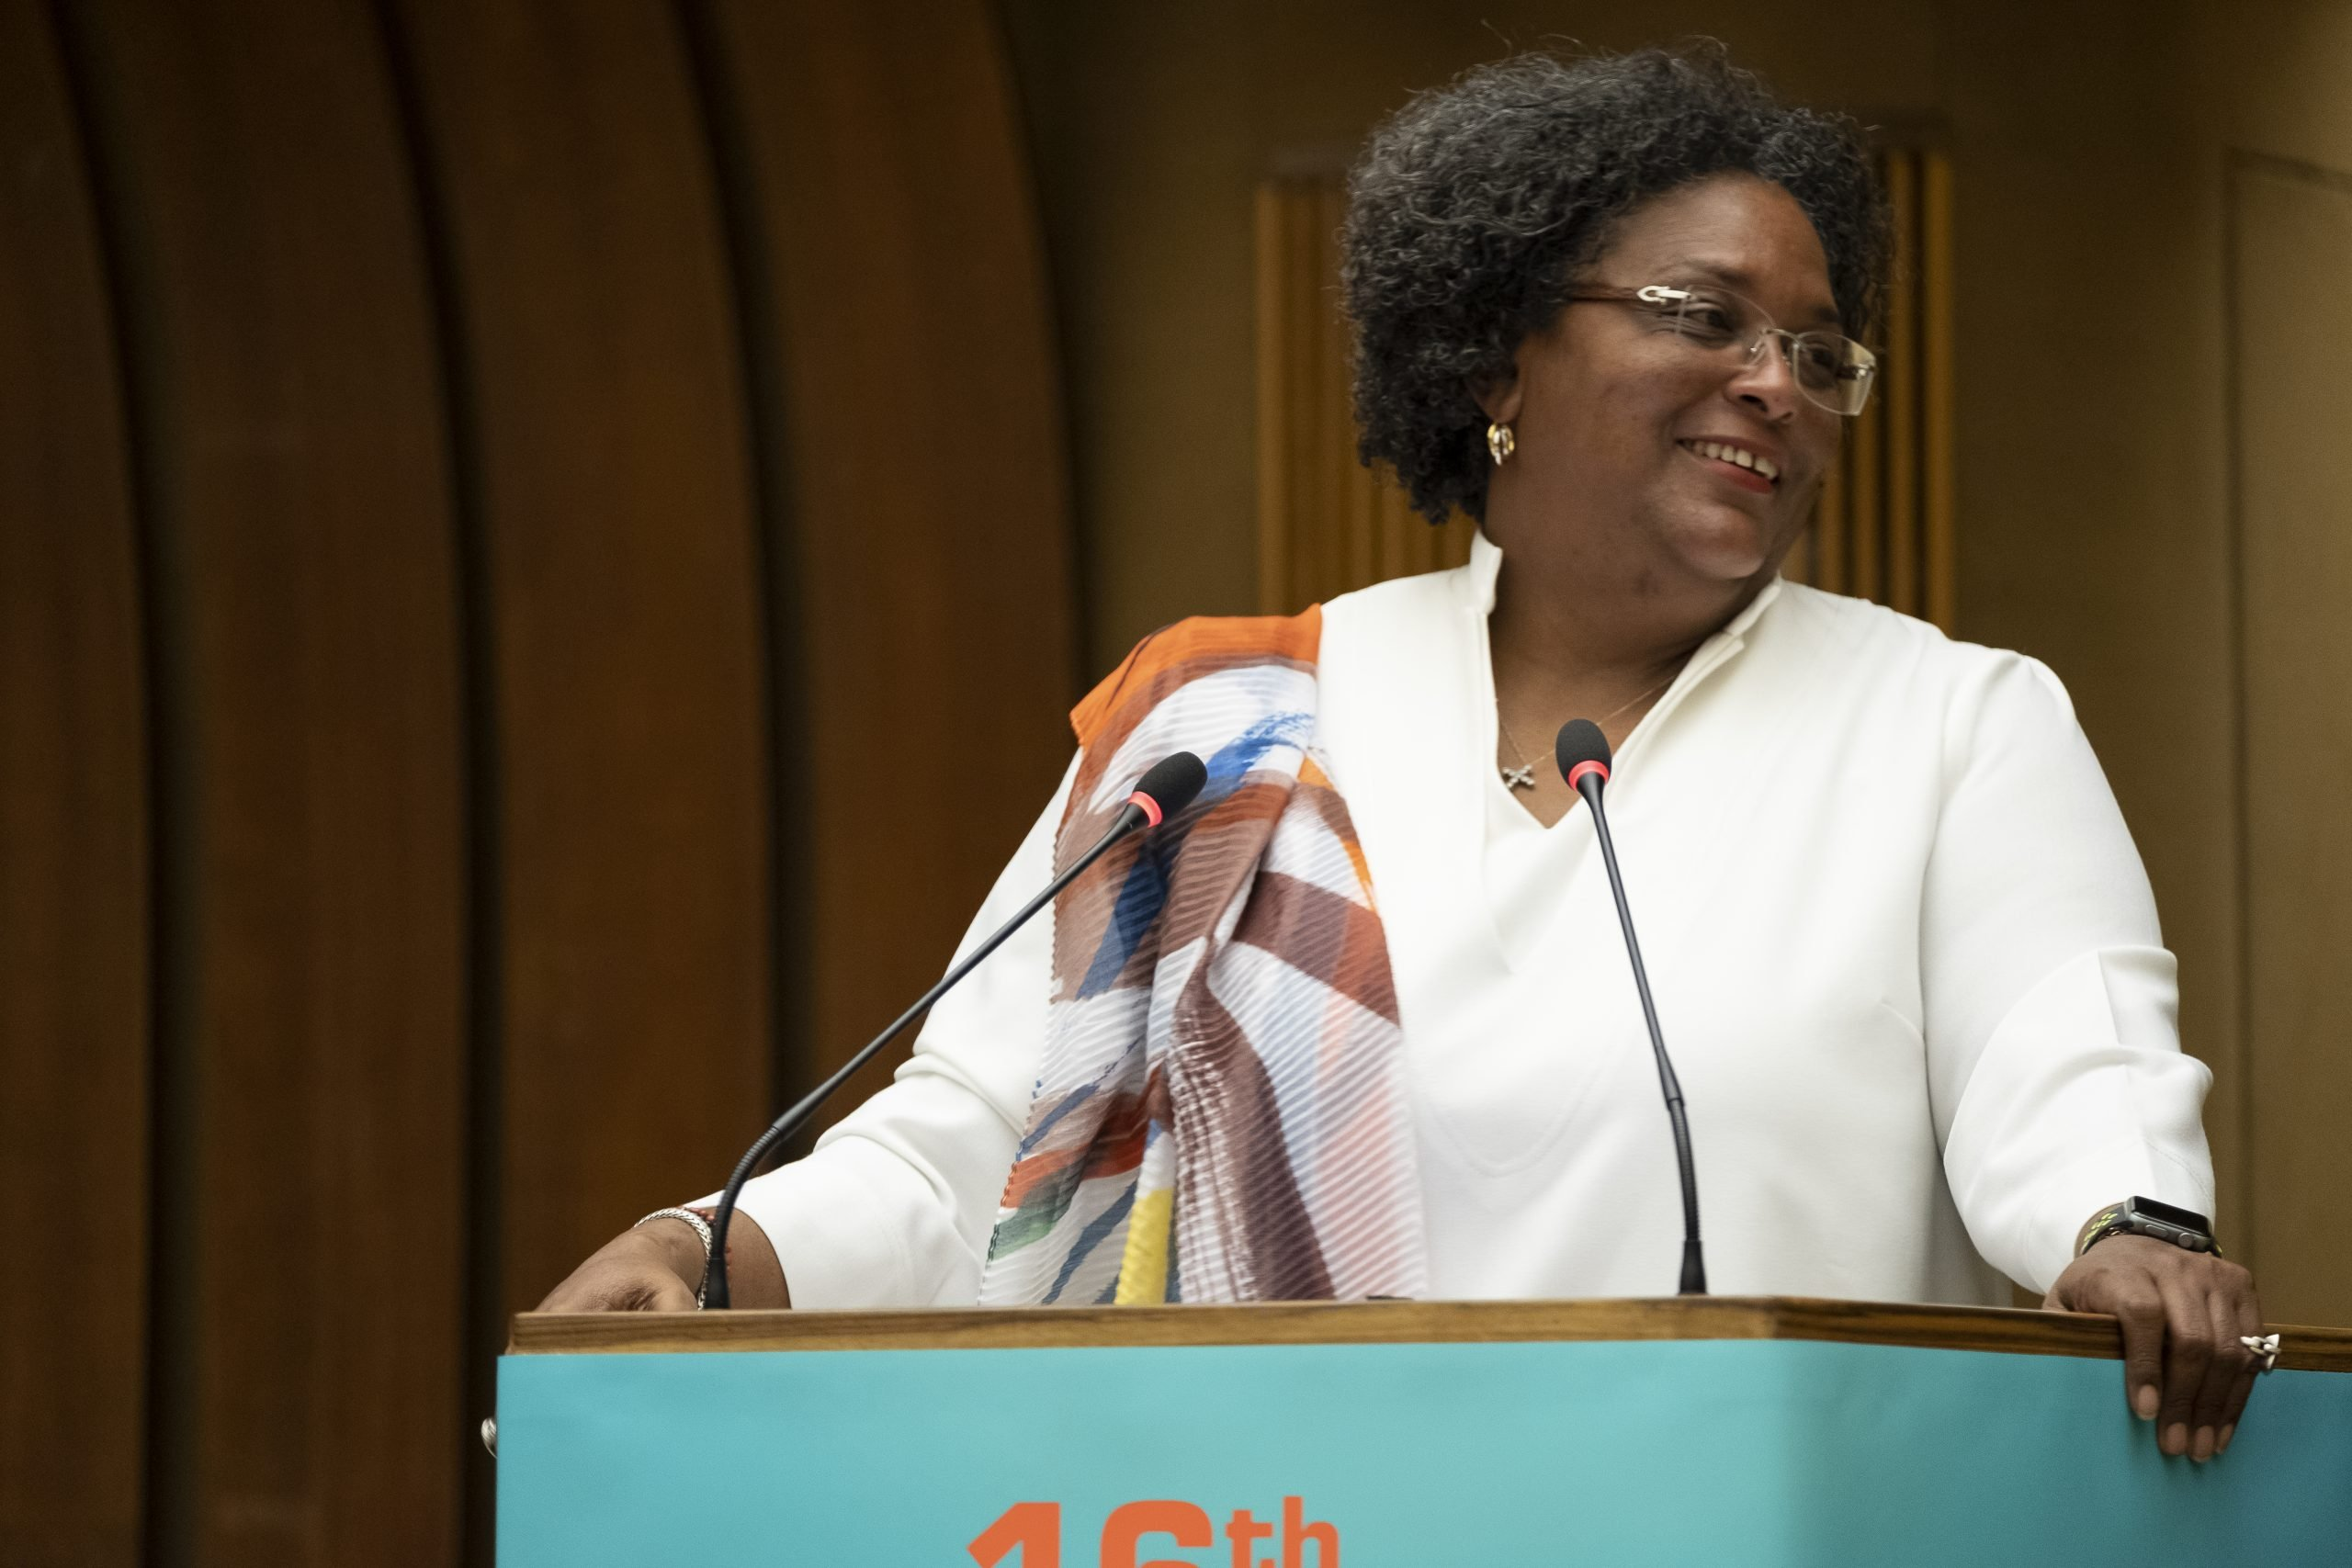 Two Women Of Barbados: How Singer Turned Businesswoman Rihanna and the Country's First Woman Prime Minister Mia Mottley Forged Their Paths